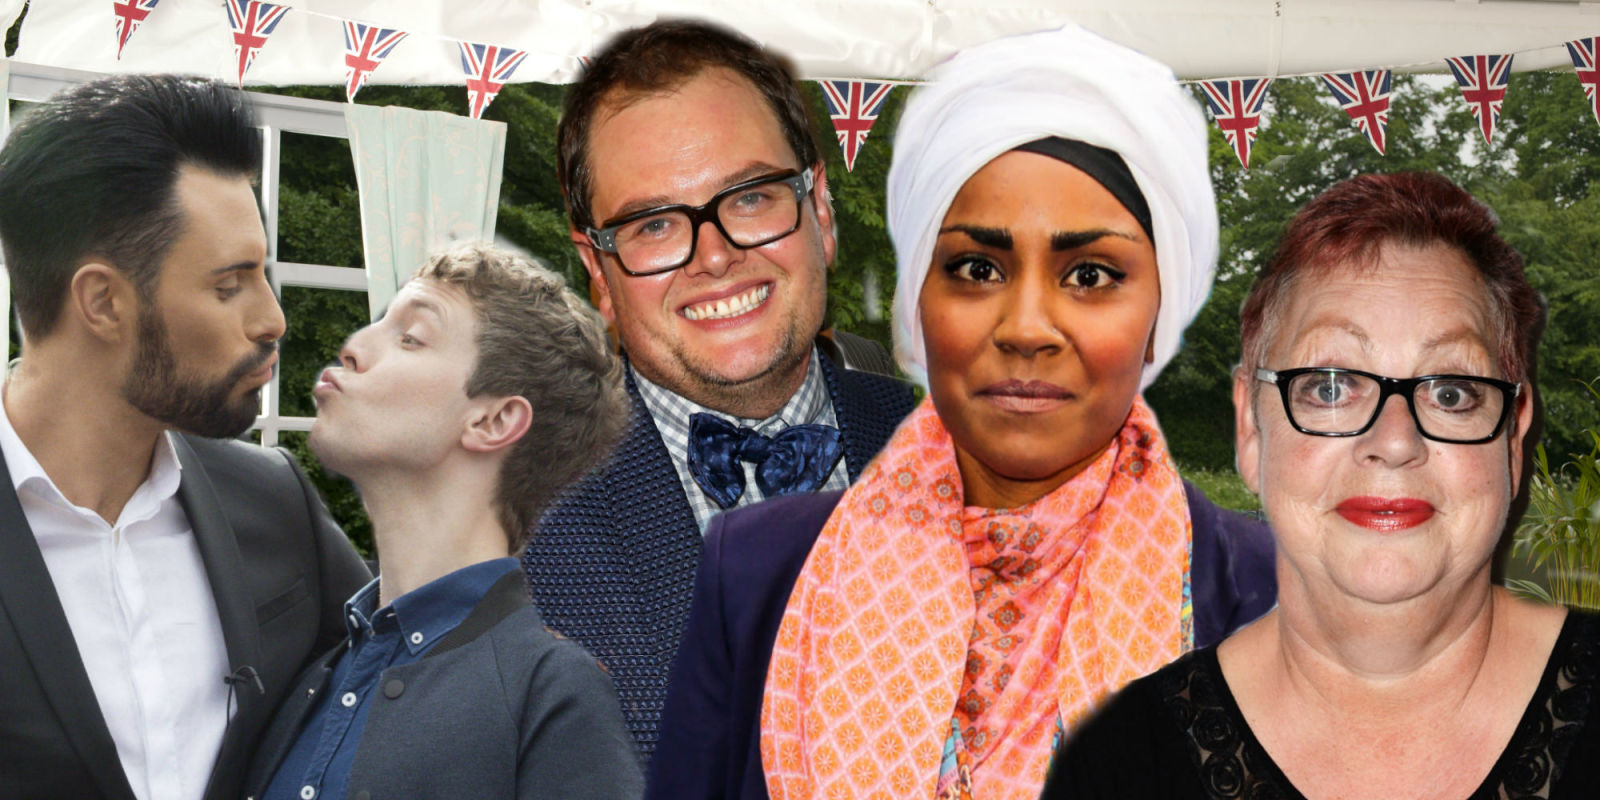 the great british bake off: who is going to replace mel & sue? all